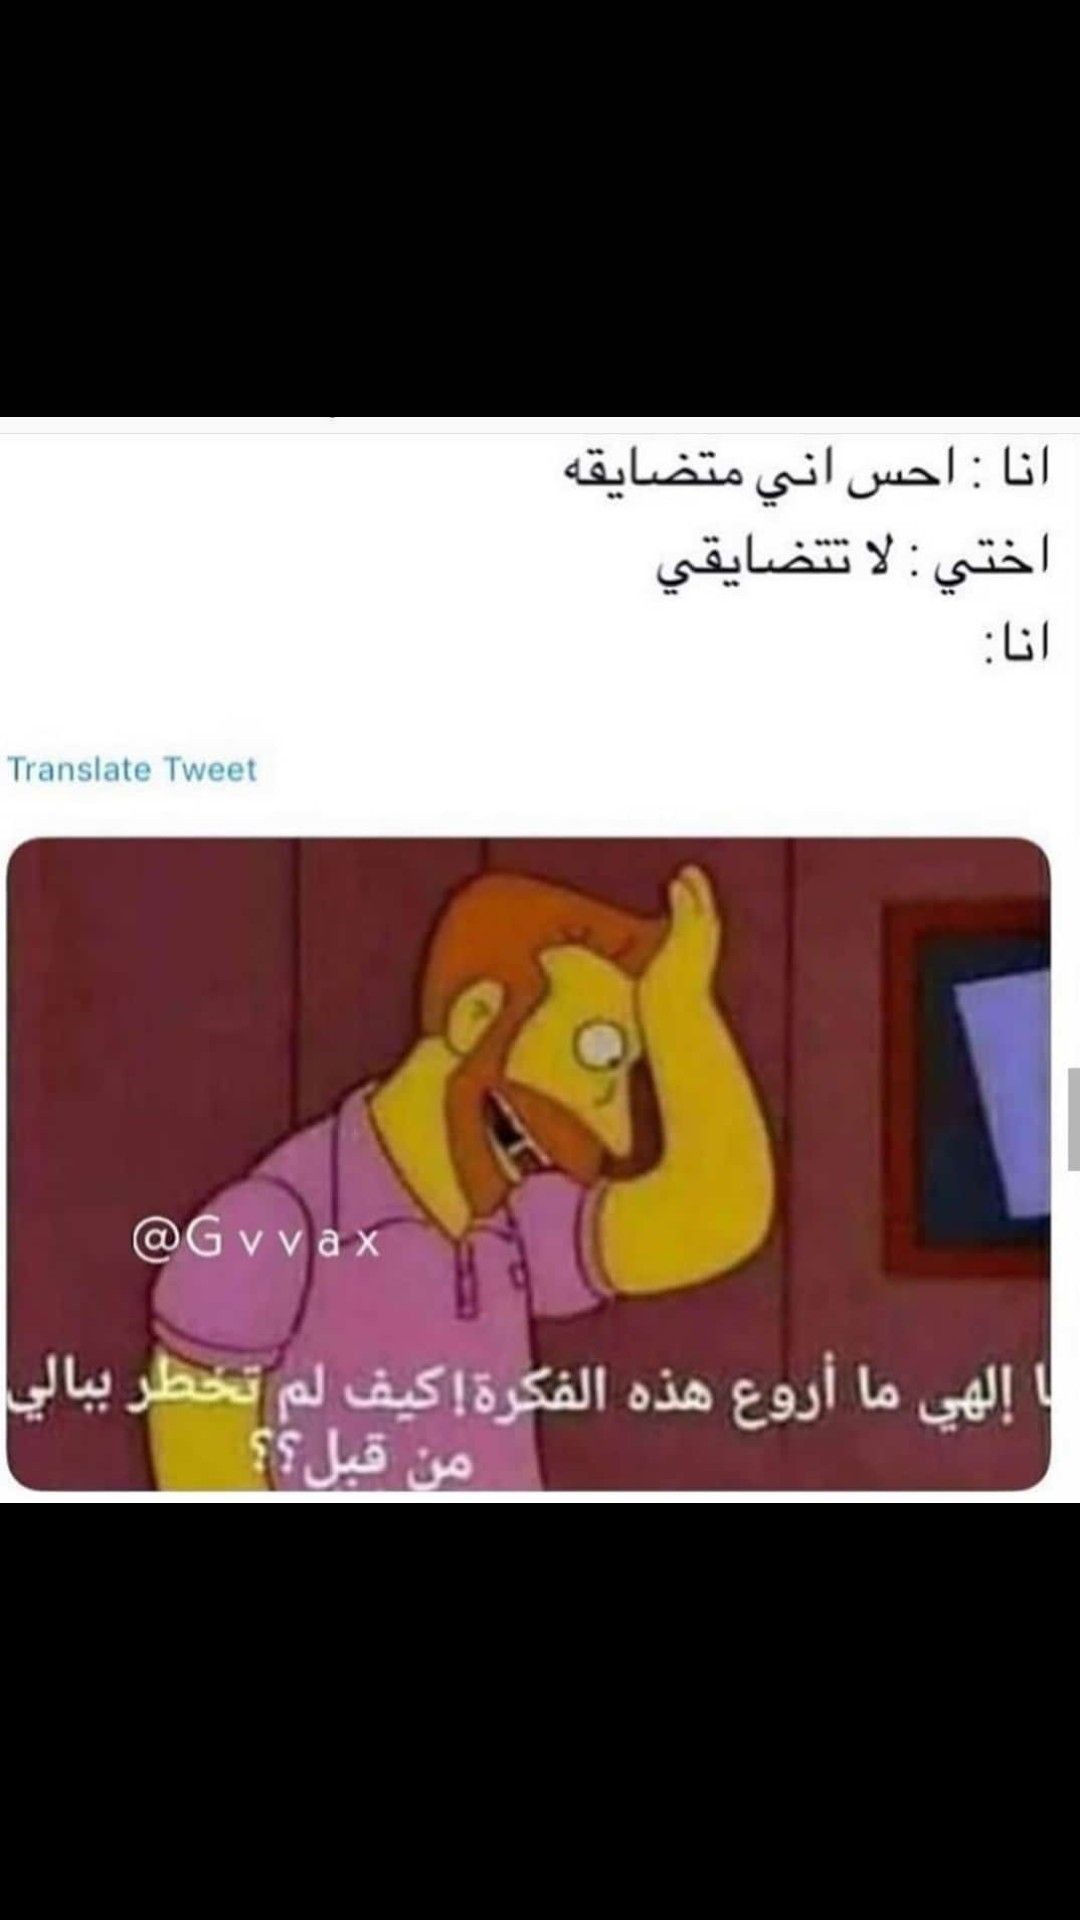 Pin By Shadia On استهبال Fun Quotes Funny Funny Arabic Quotes Movie Quotes Funny